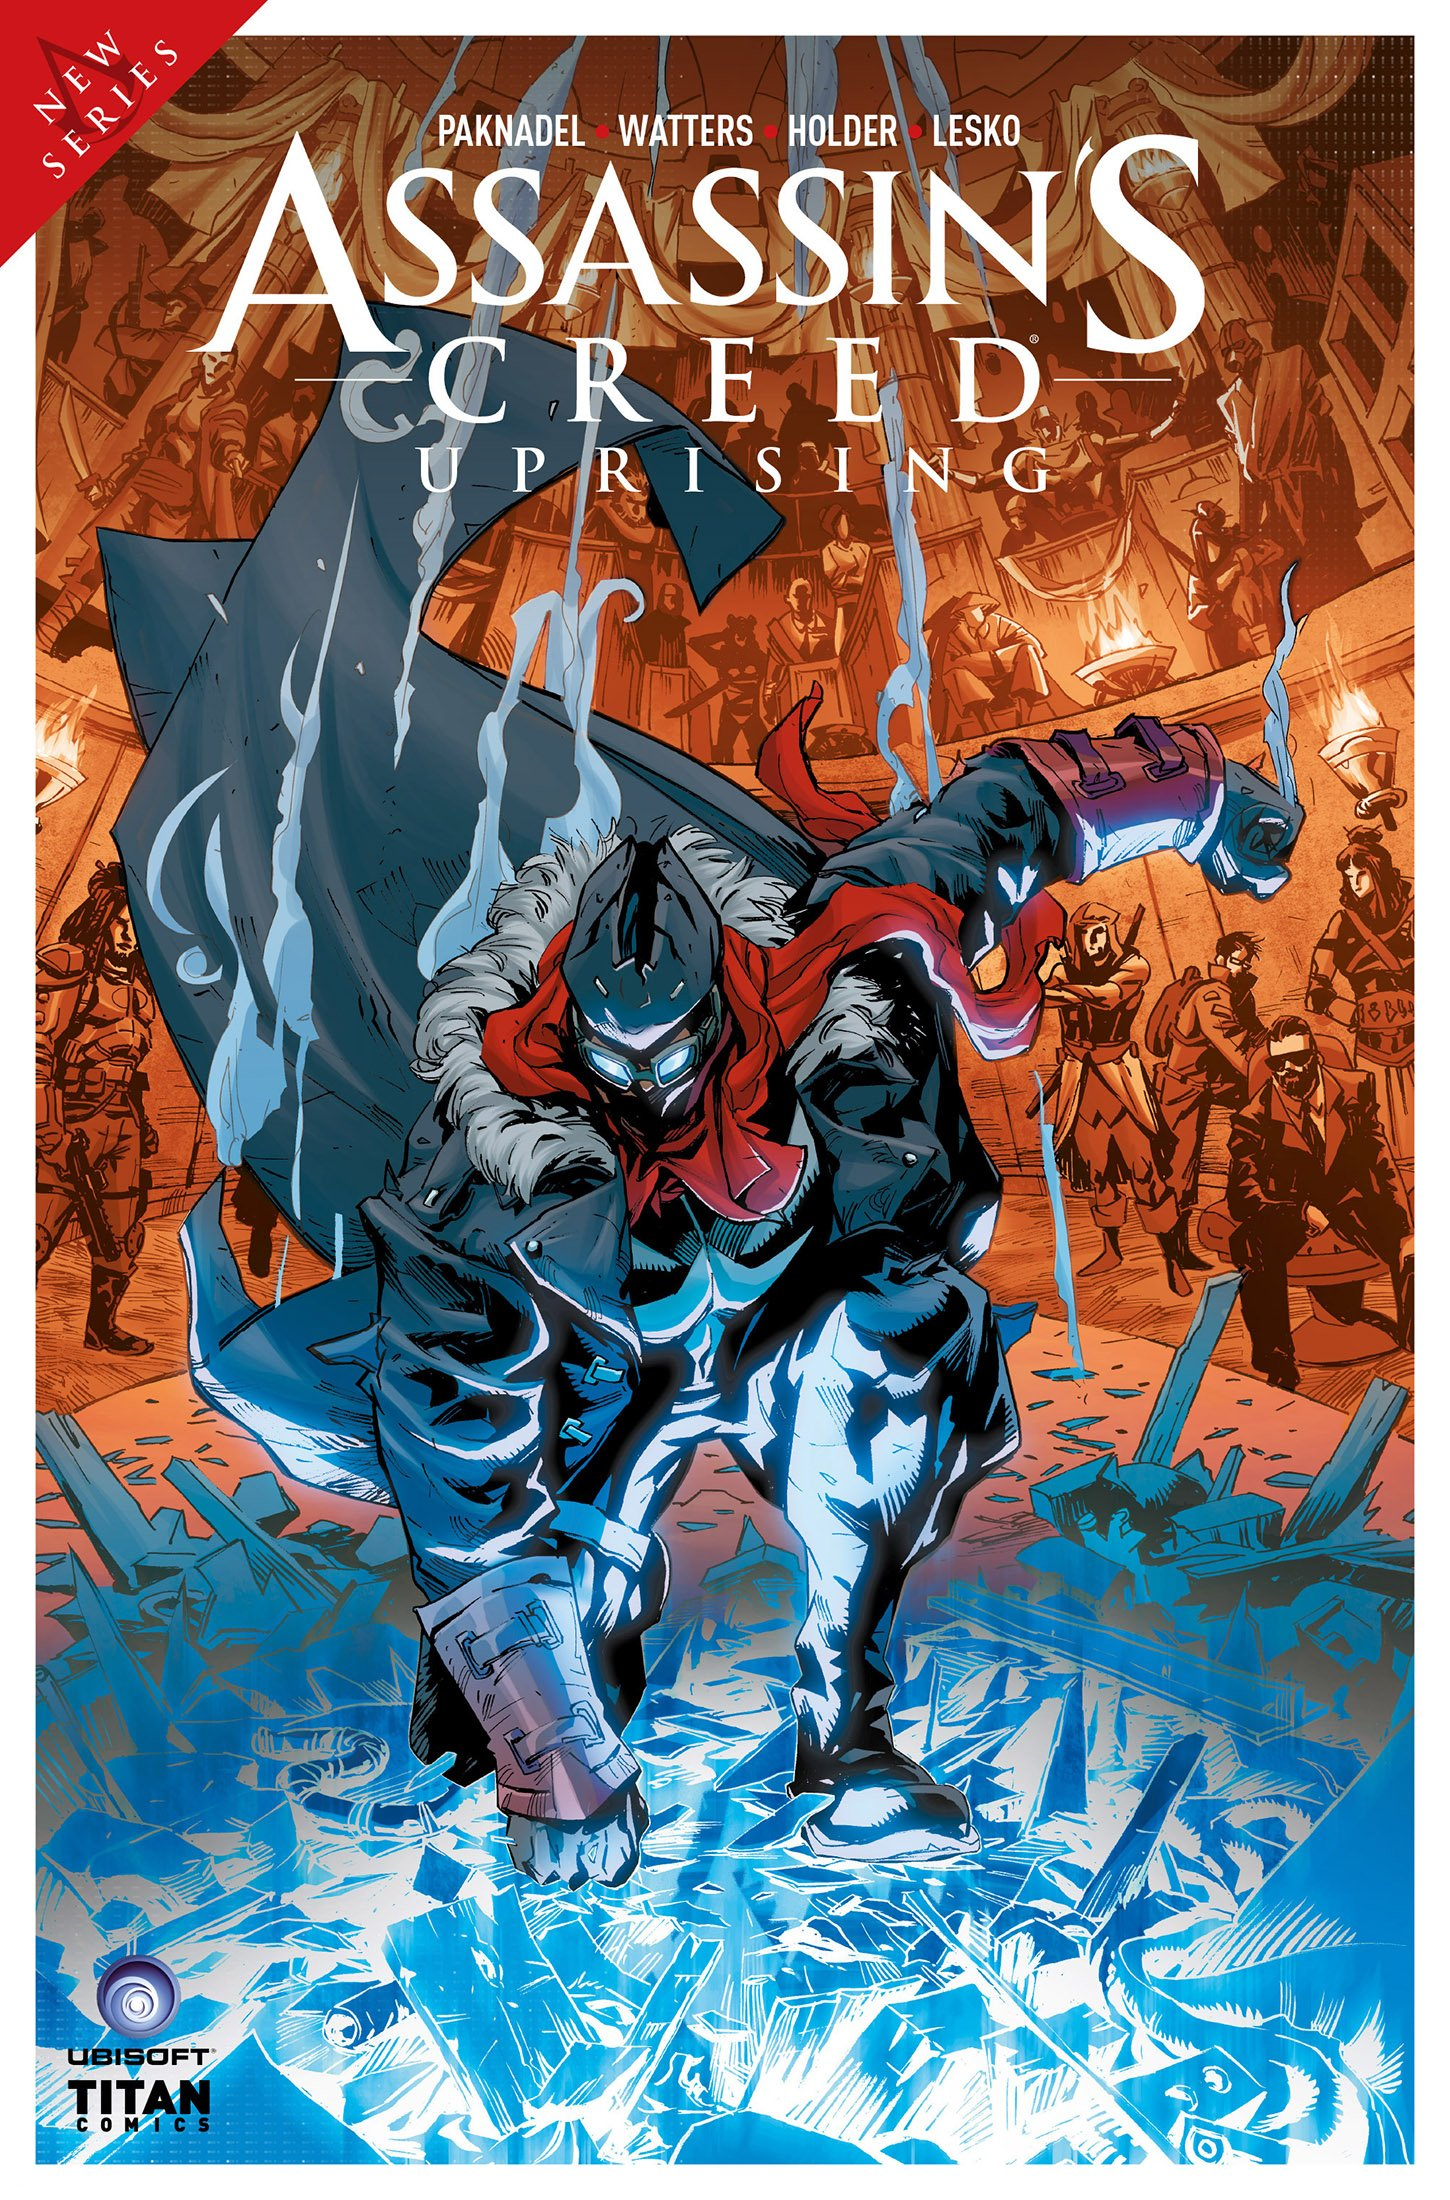 Assassin's Creed - Uprising 02 (April 2017) (cover c)